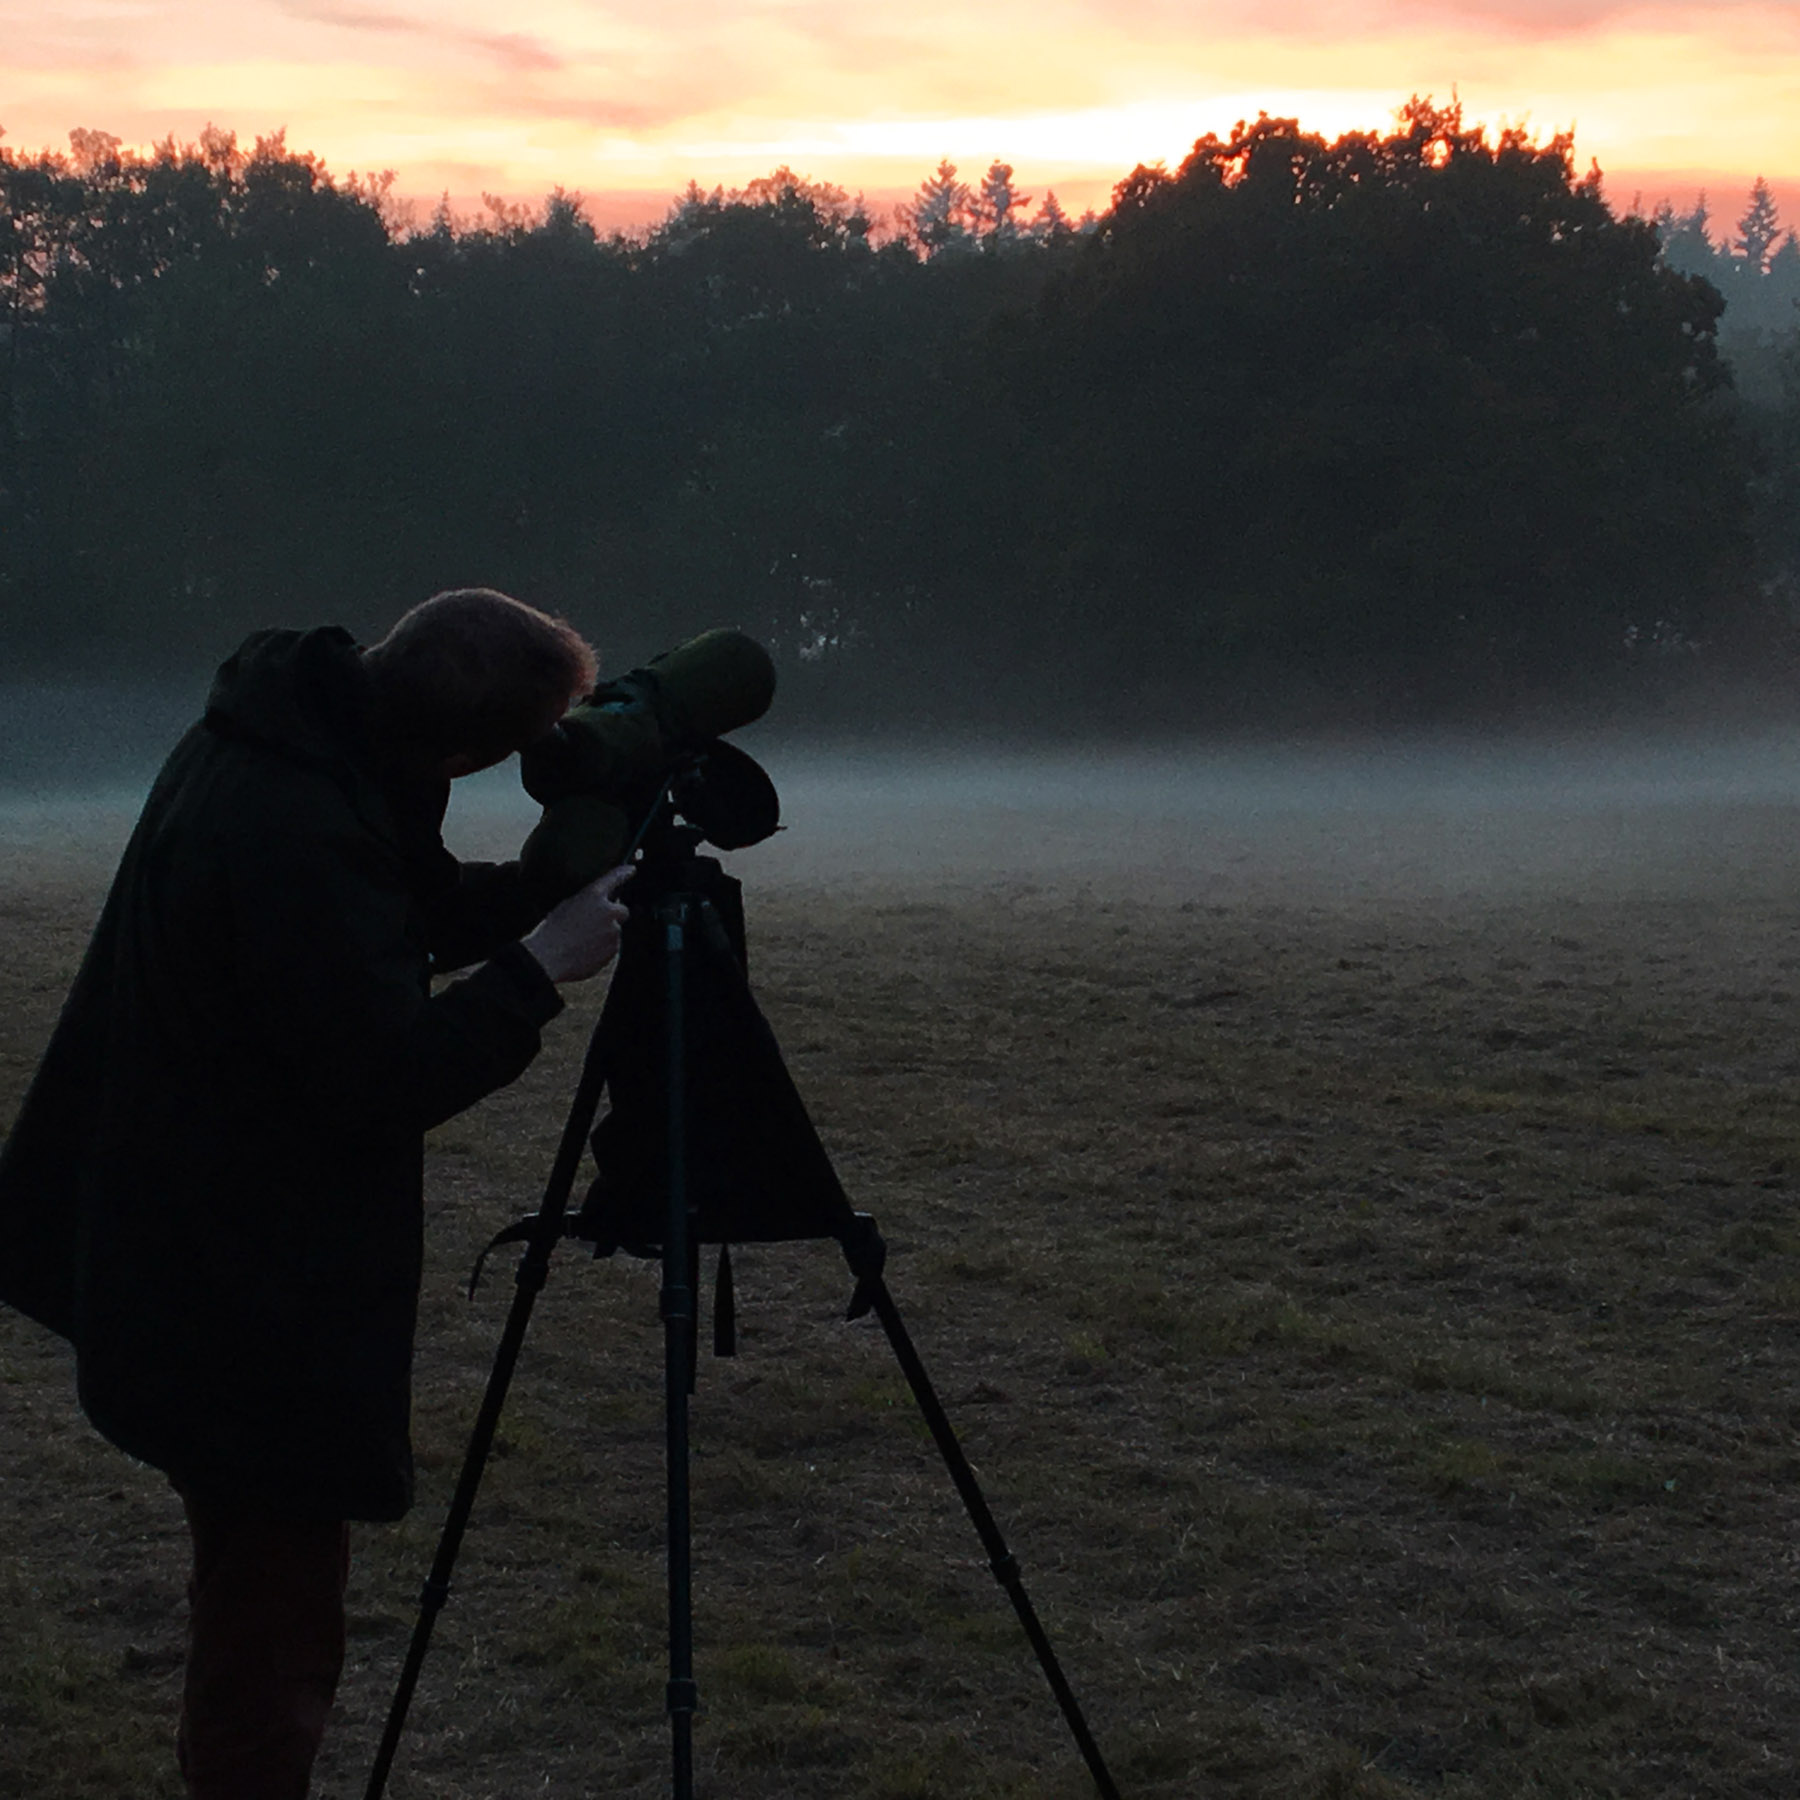 Edward Parnell scanning for bramblings in the rising mist © K. Walne